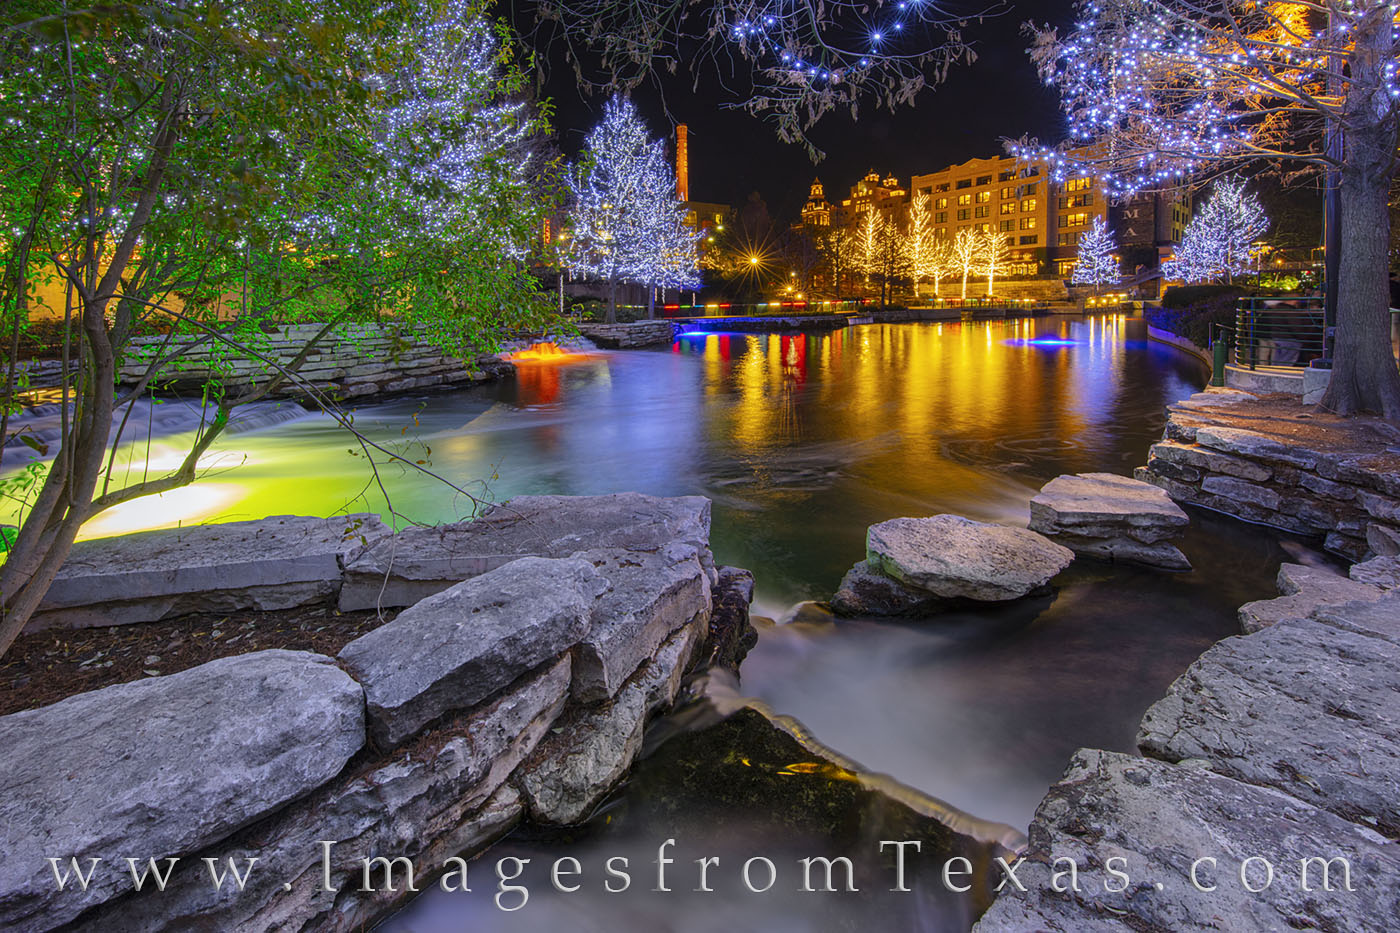 Pearl District, holiday lights, christmas, lights, holiday, san antonio river, rio taxi, december, san antonio, photo